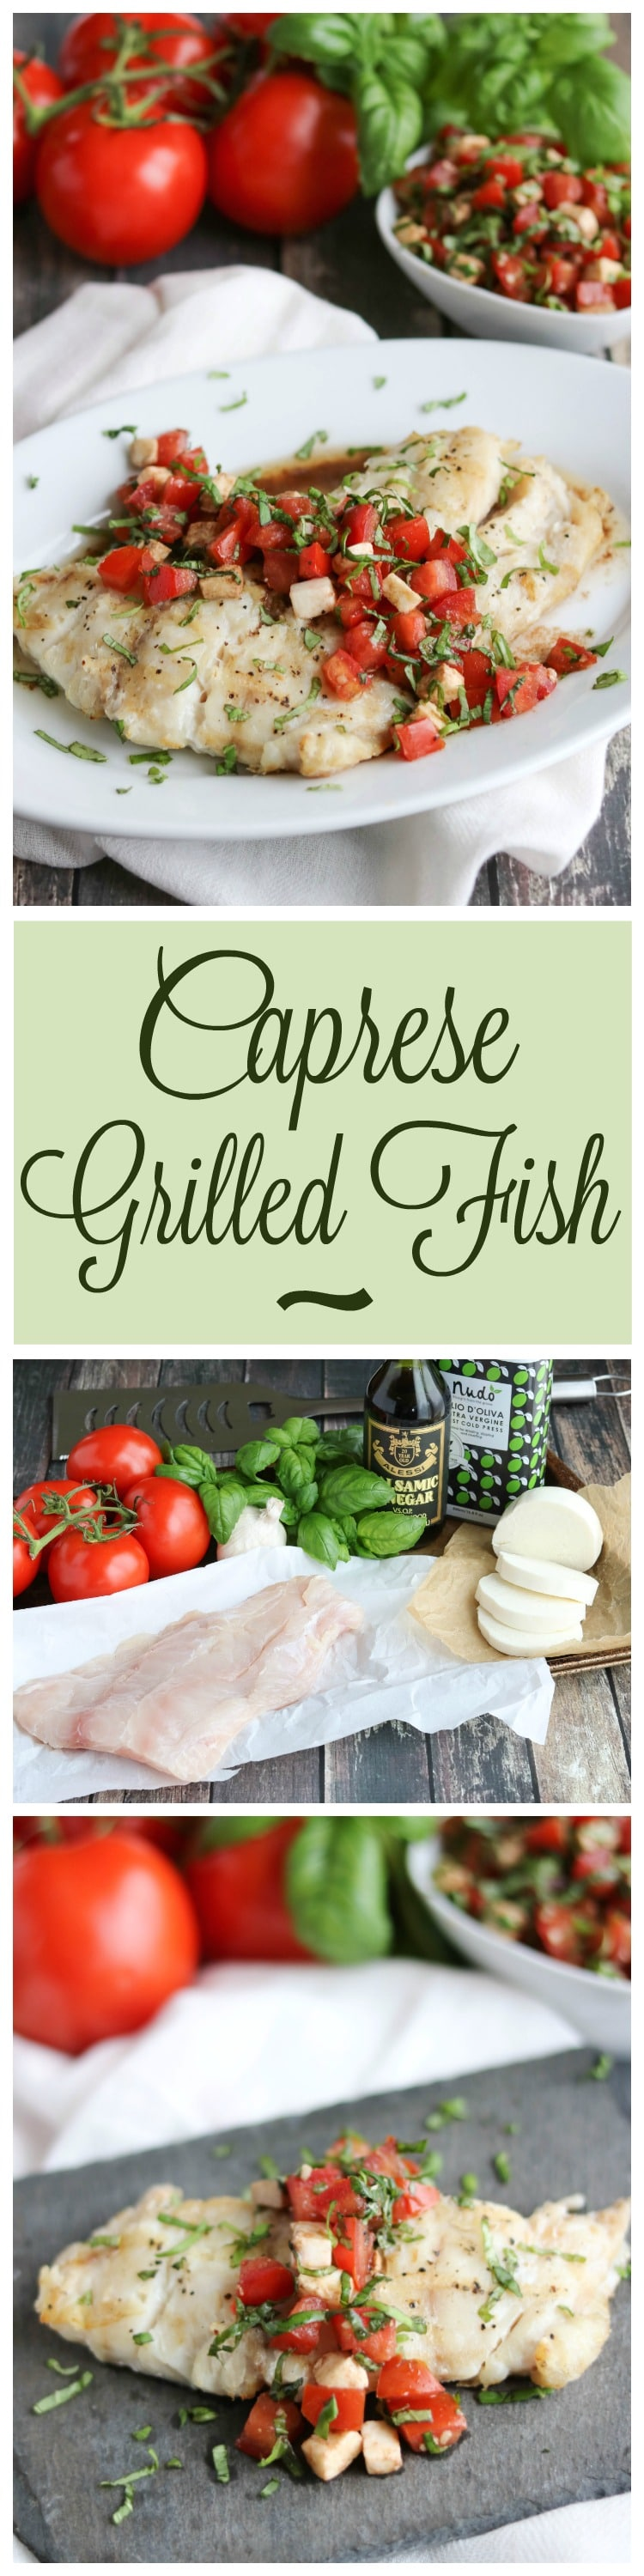 Caprese Grilled Fish is super simple yet incredibly delicious - perfect with summer's best tomatoes and basil! An easy grilling recipe for cookouts or casual family suppers! | www.TwoHealthyKitchens.com